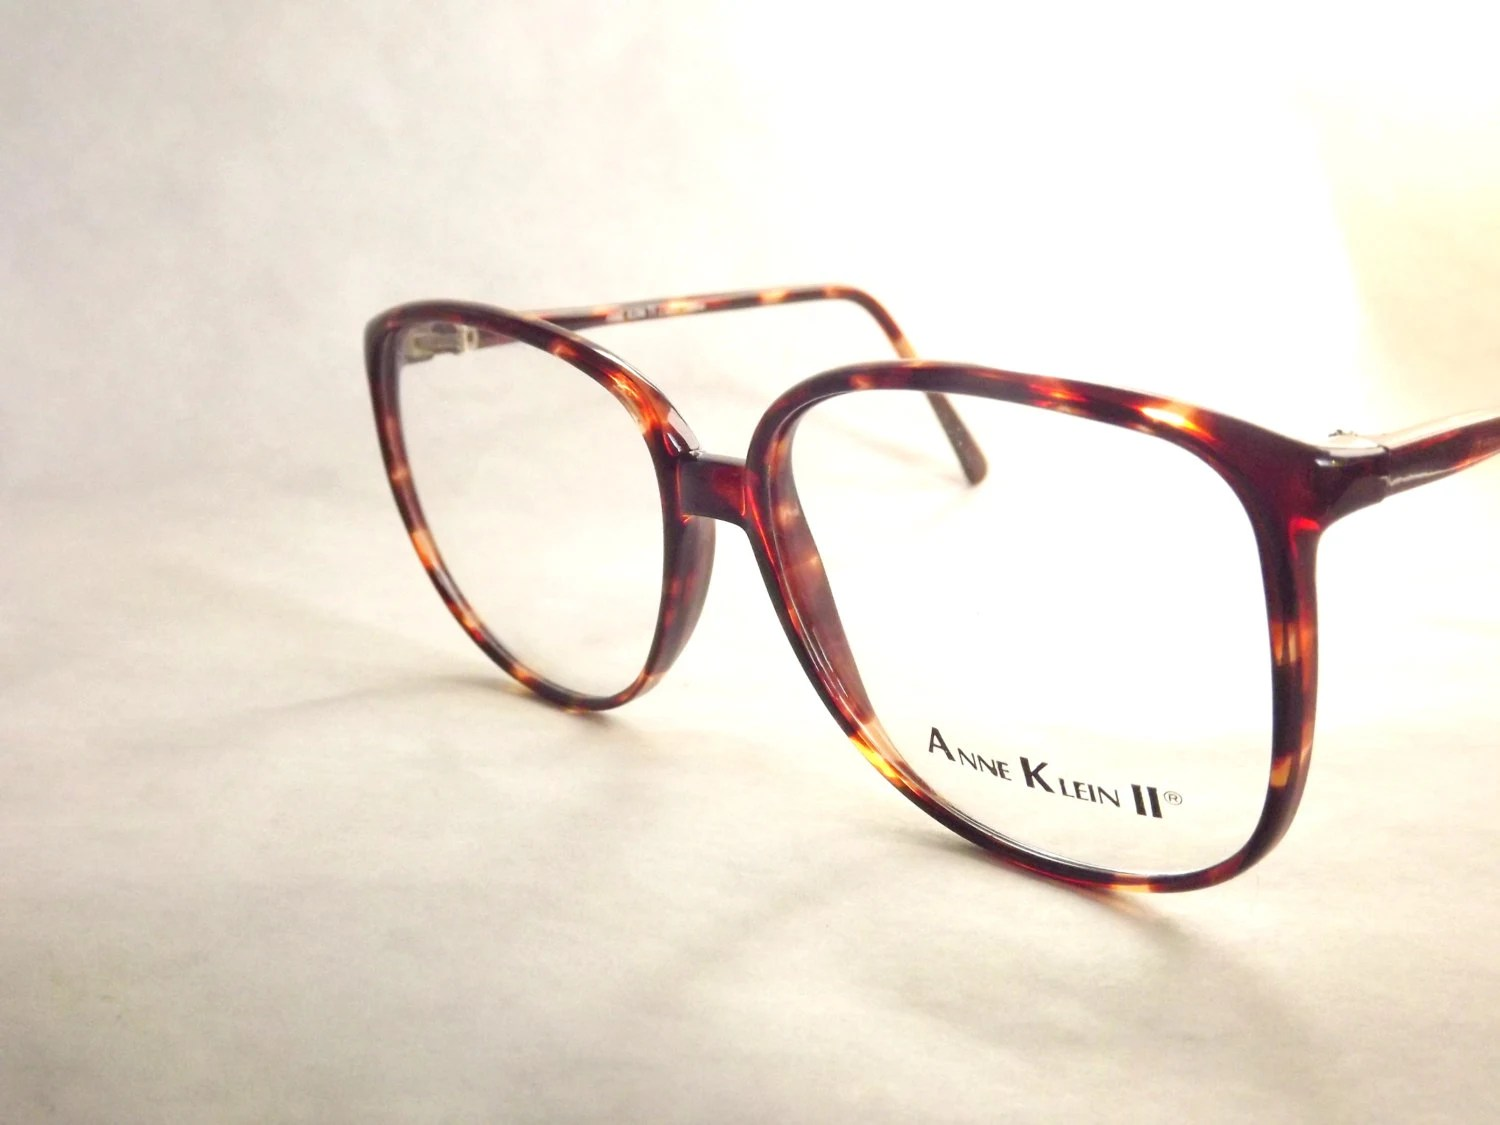 6d5e13a55227 Designer Eyeglasses Tortoise Shell Eye Glasses Vintage Anne